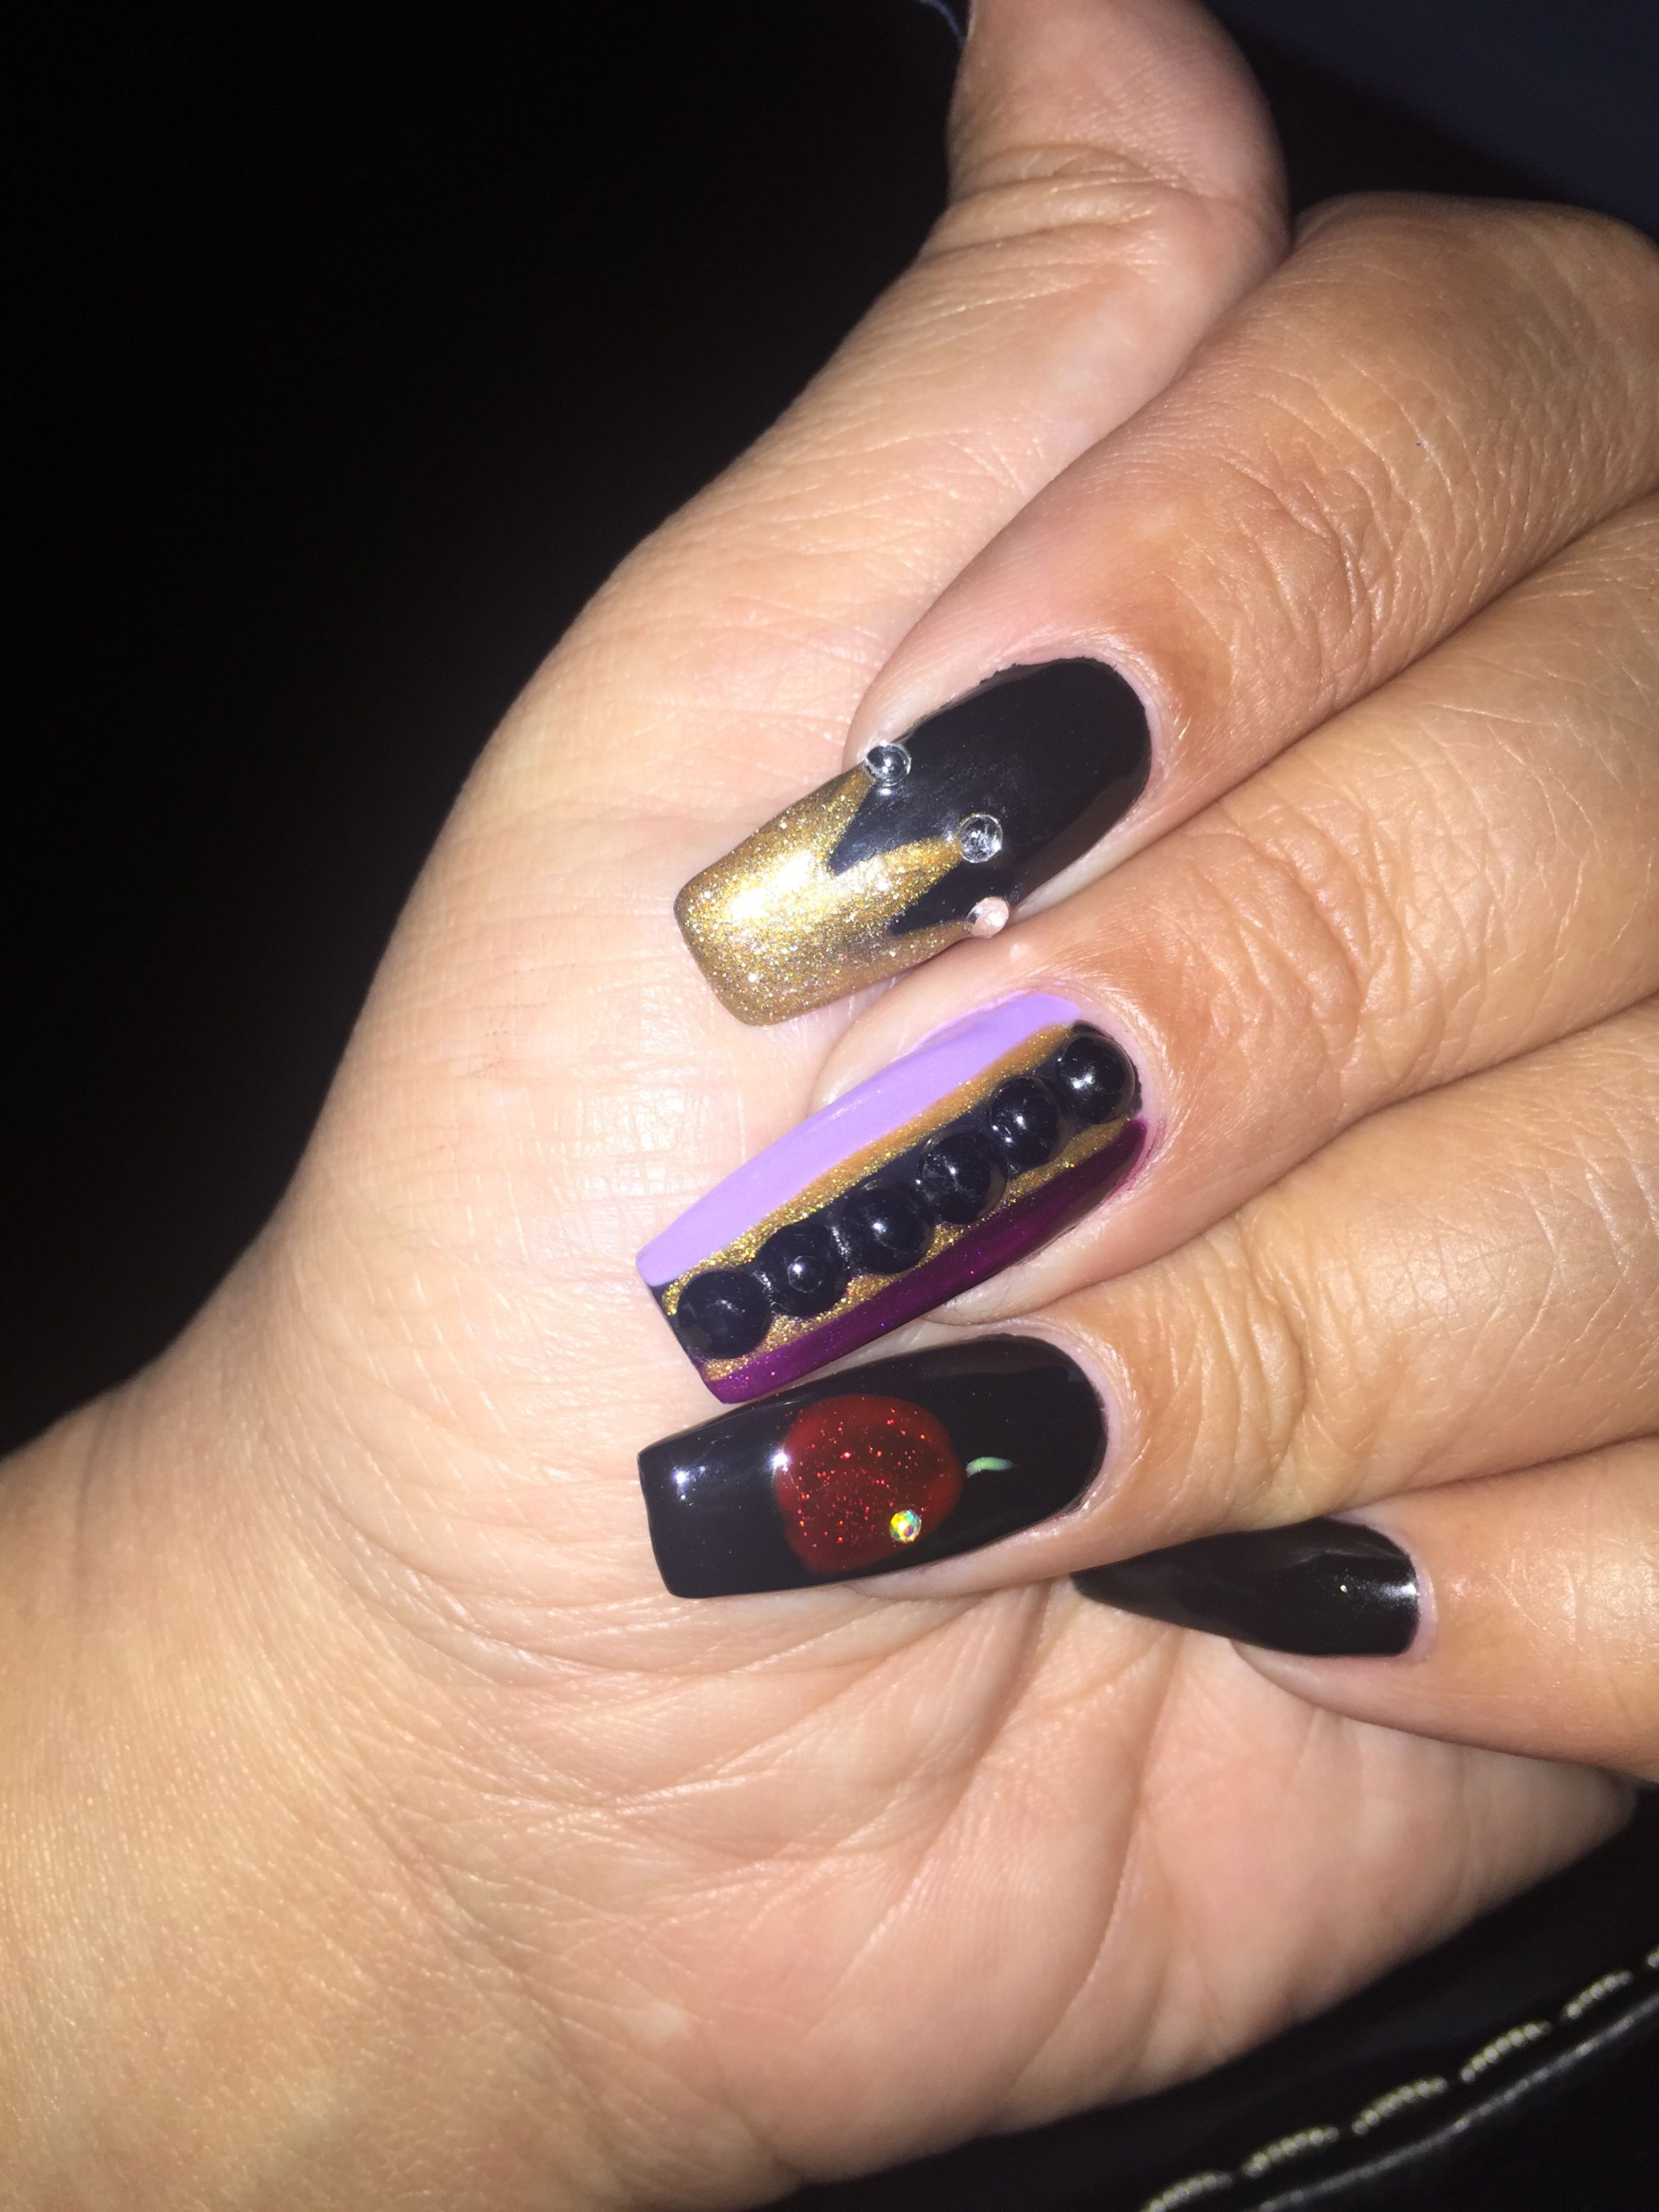 Evil queen nails | Nails | Pinterest | Evil queens